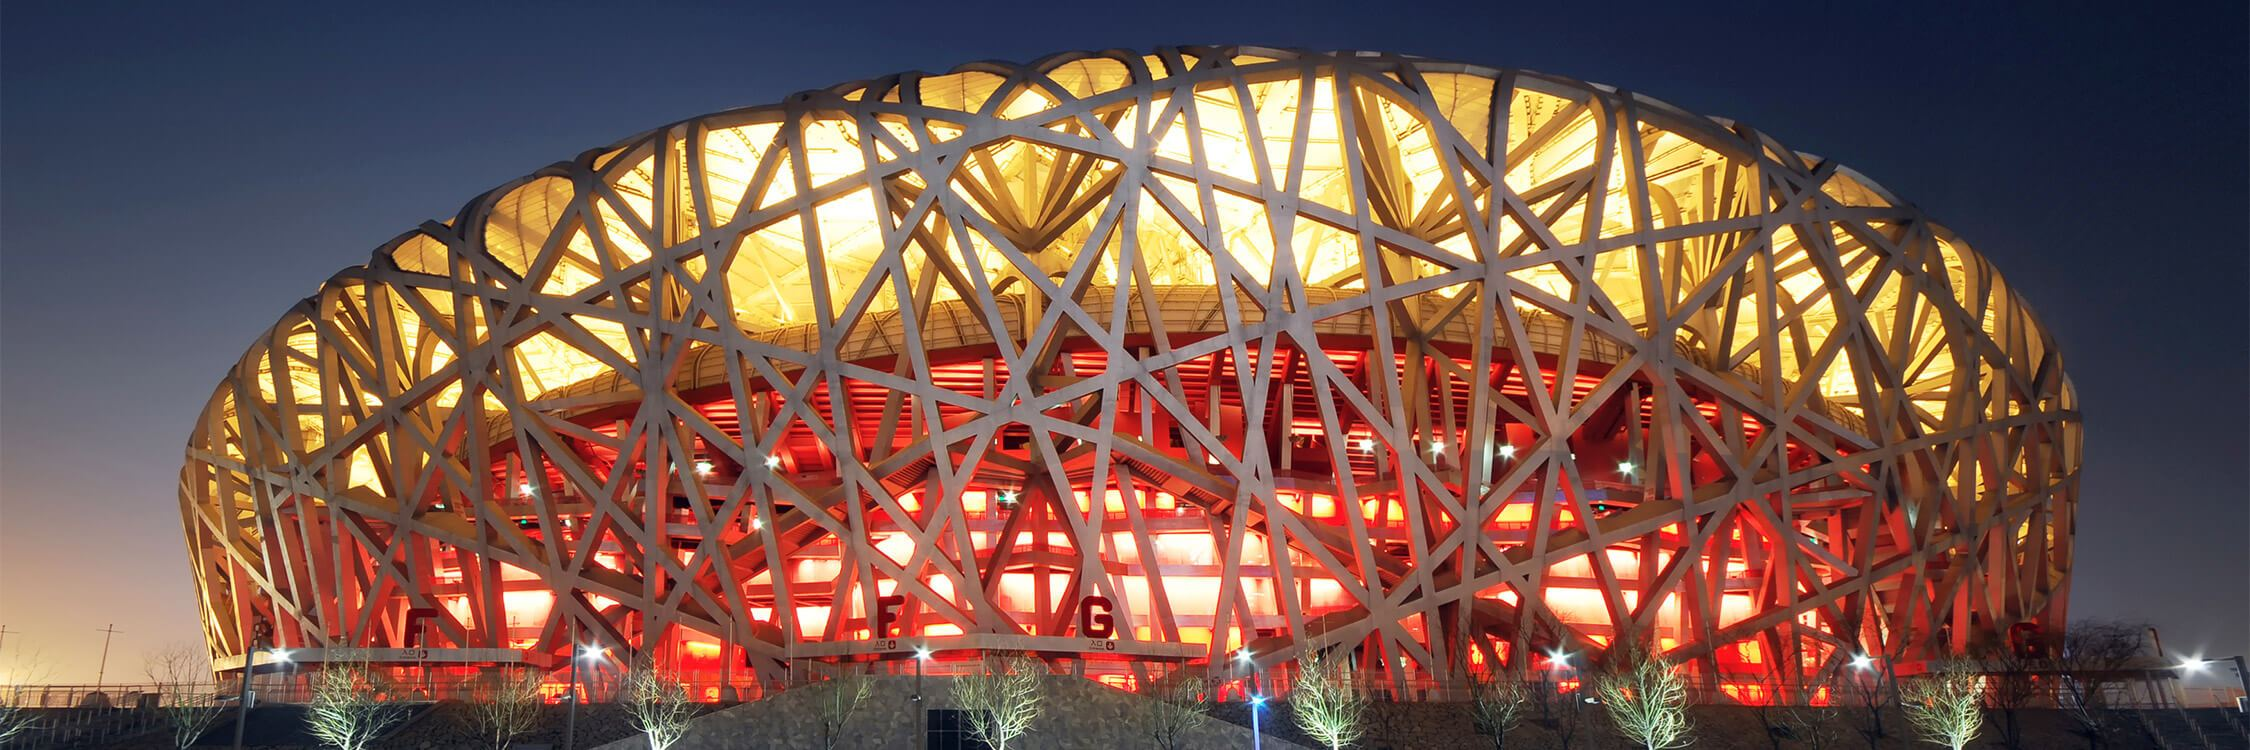 Peking-stadium-external